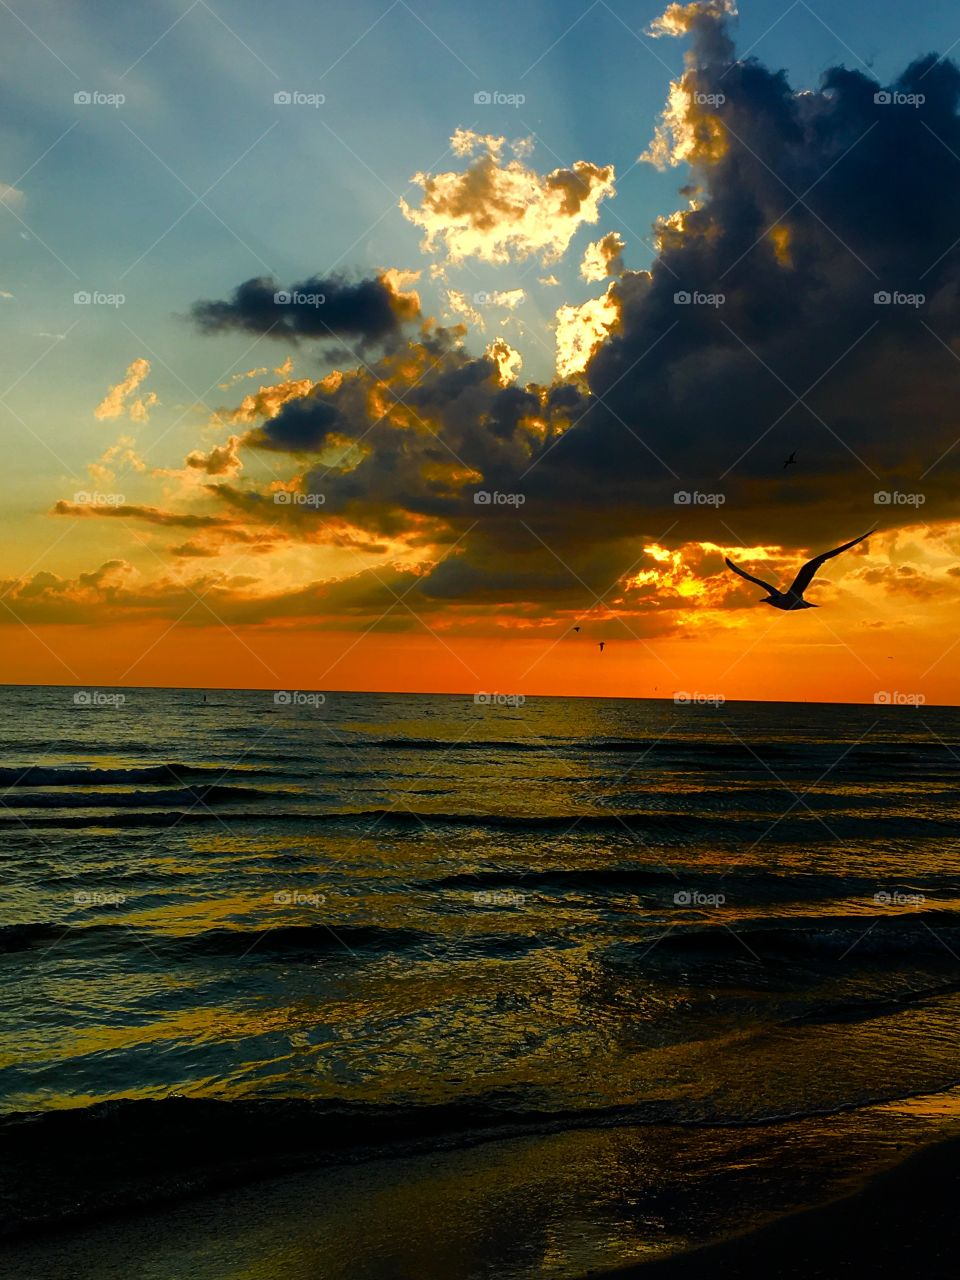 Silhouette of a bird flying against dramatic sky